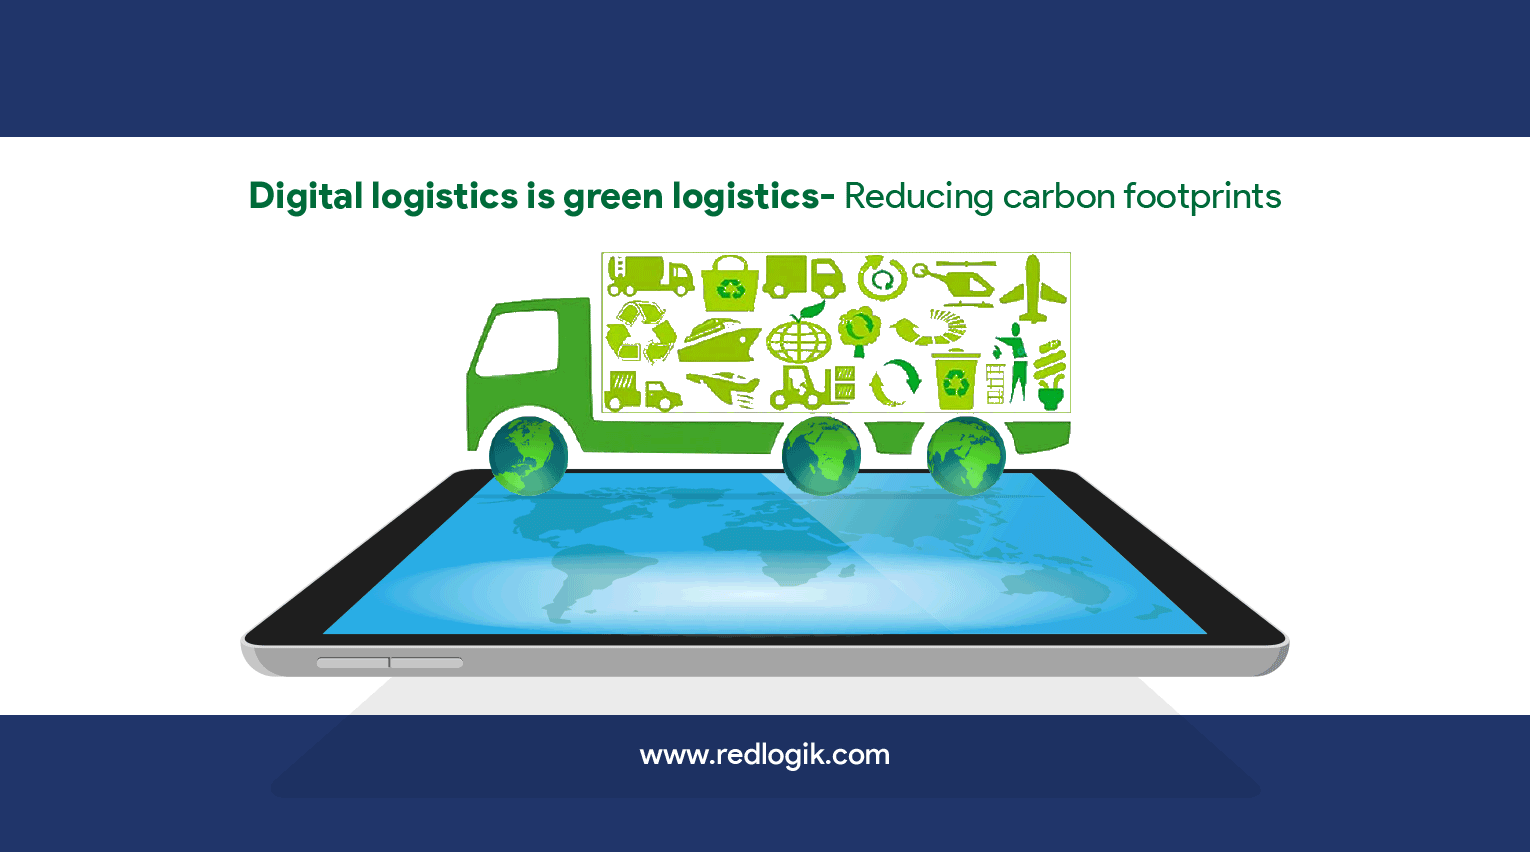 Smart logistics for a sustainable future